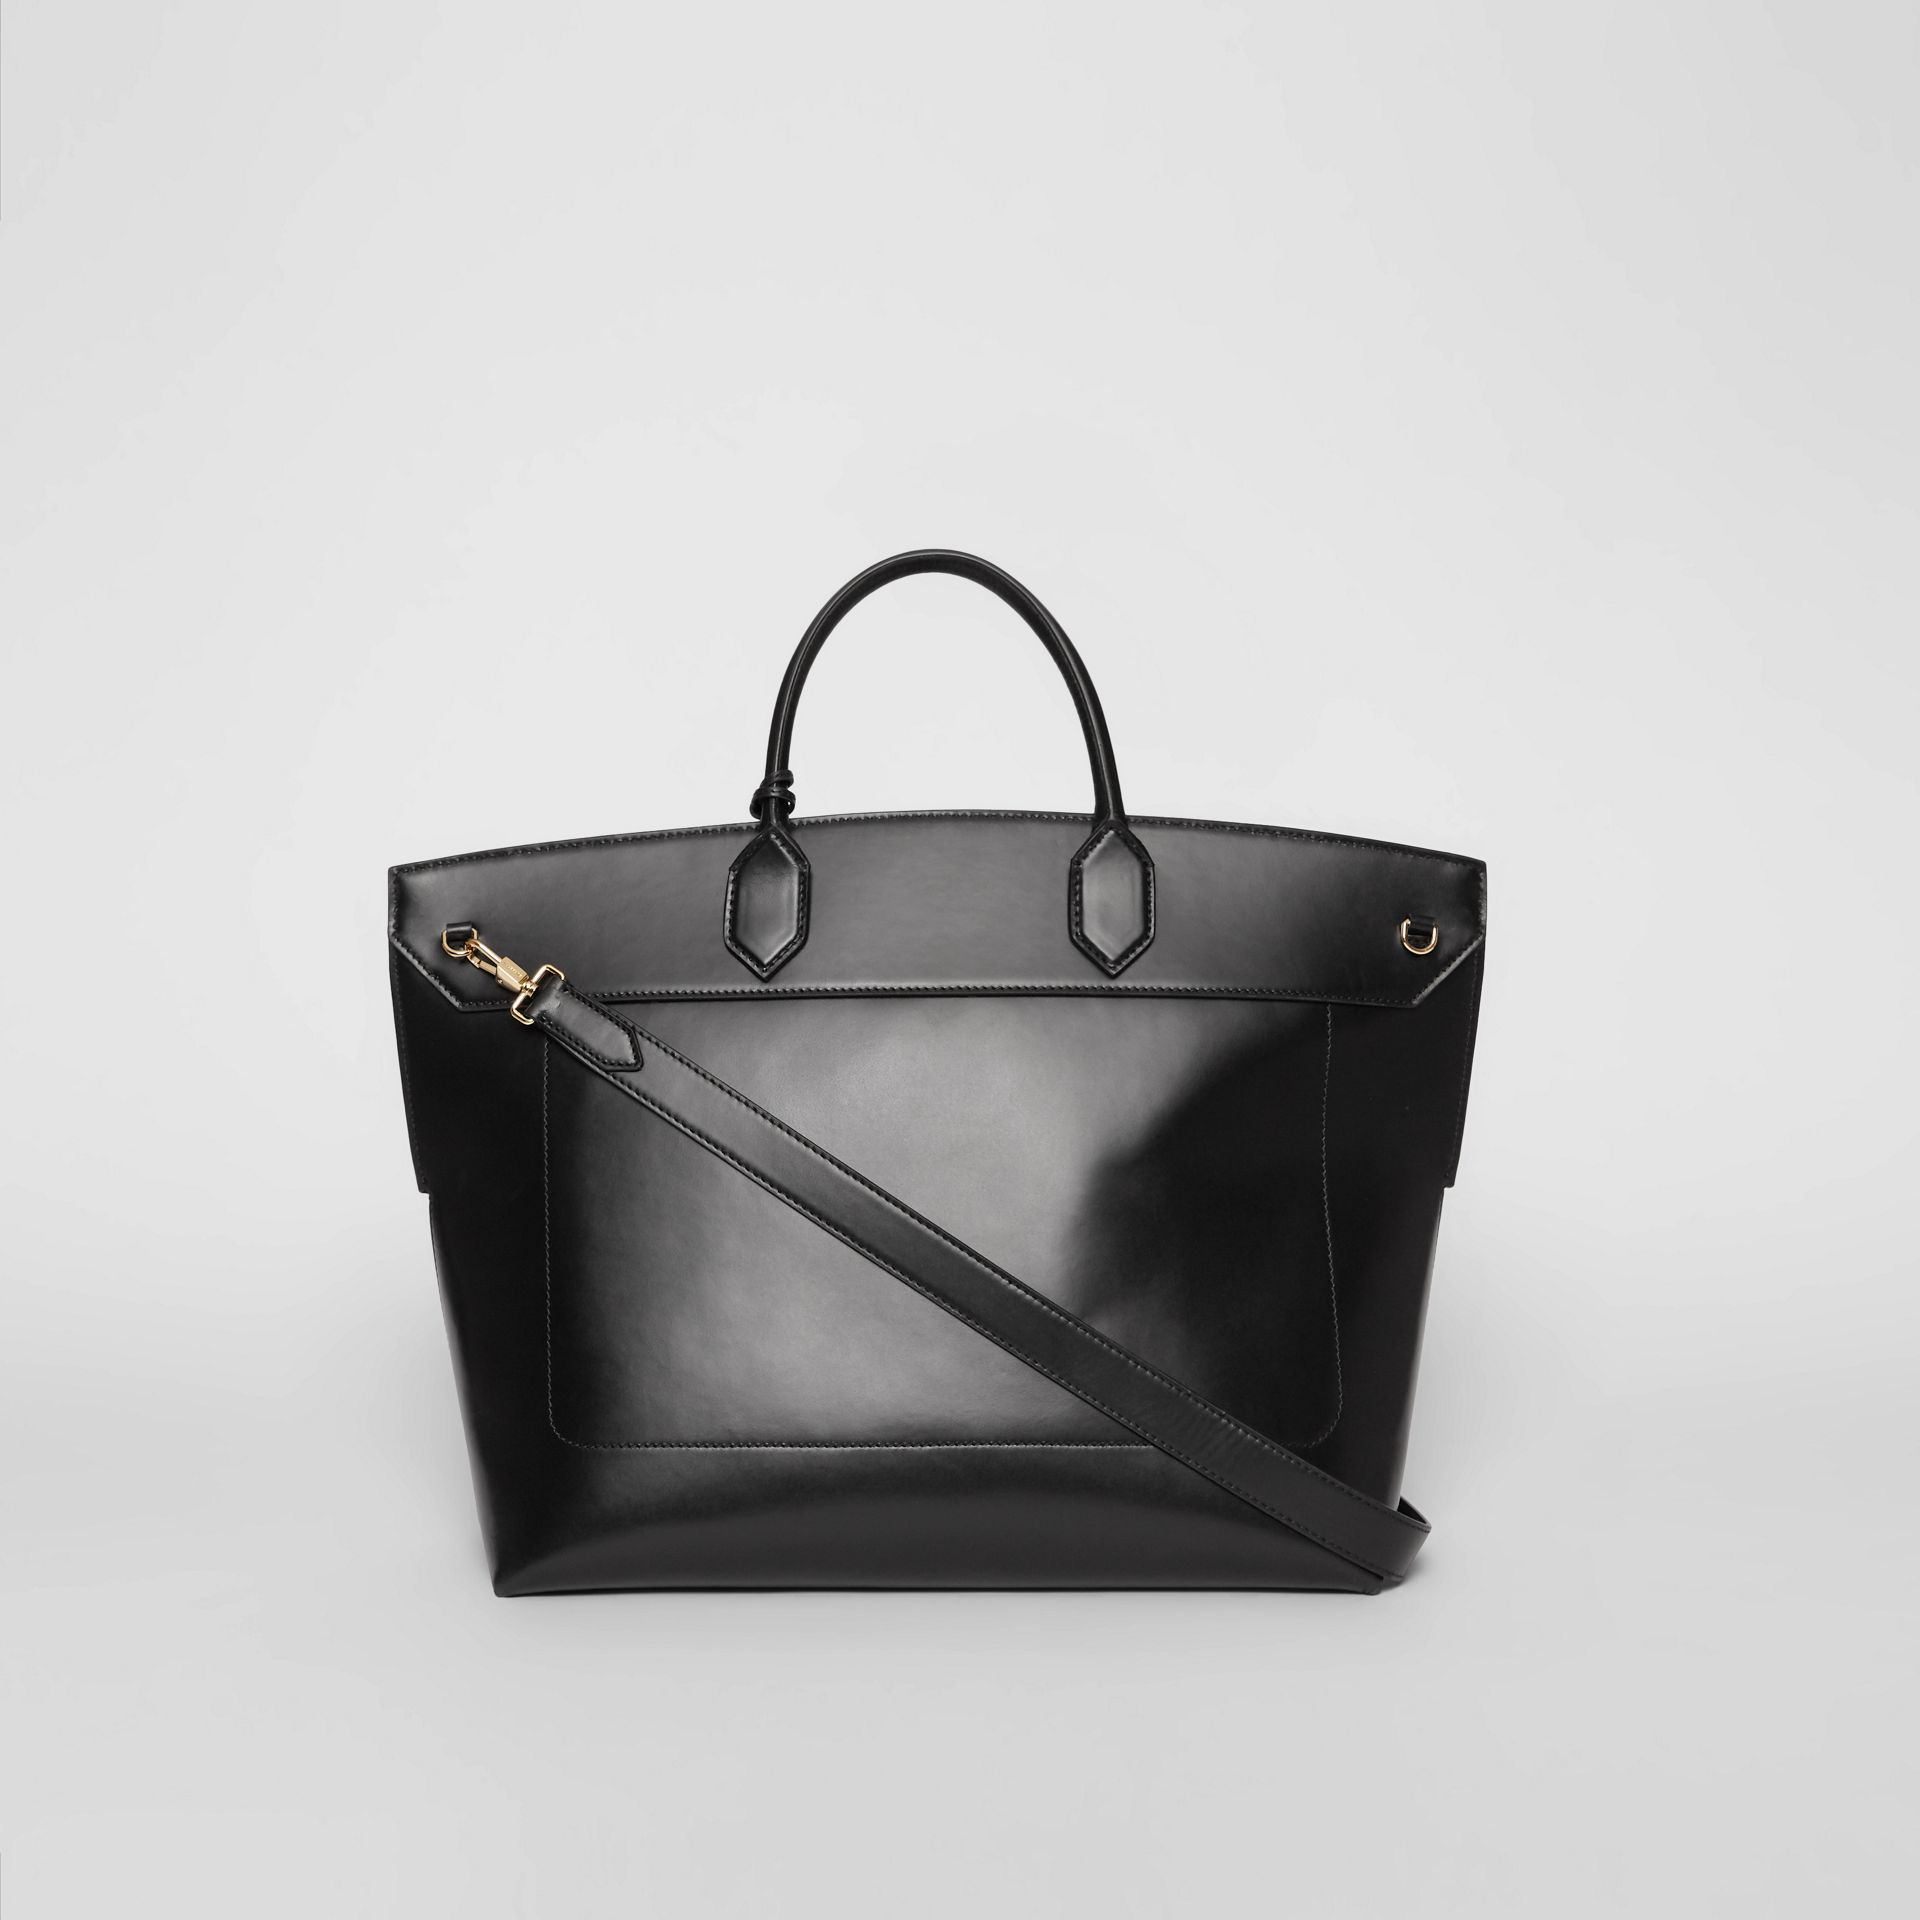 Leather Society Top Handle Bag in Black - Women | Burberry - gallery image 7